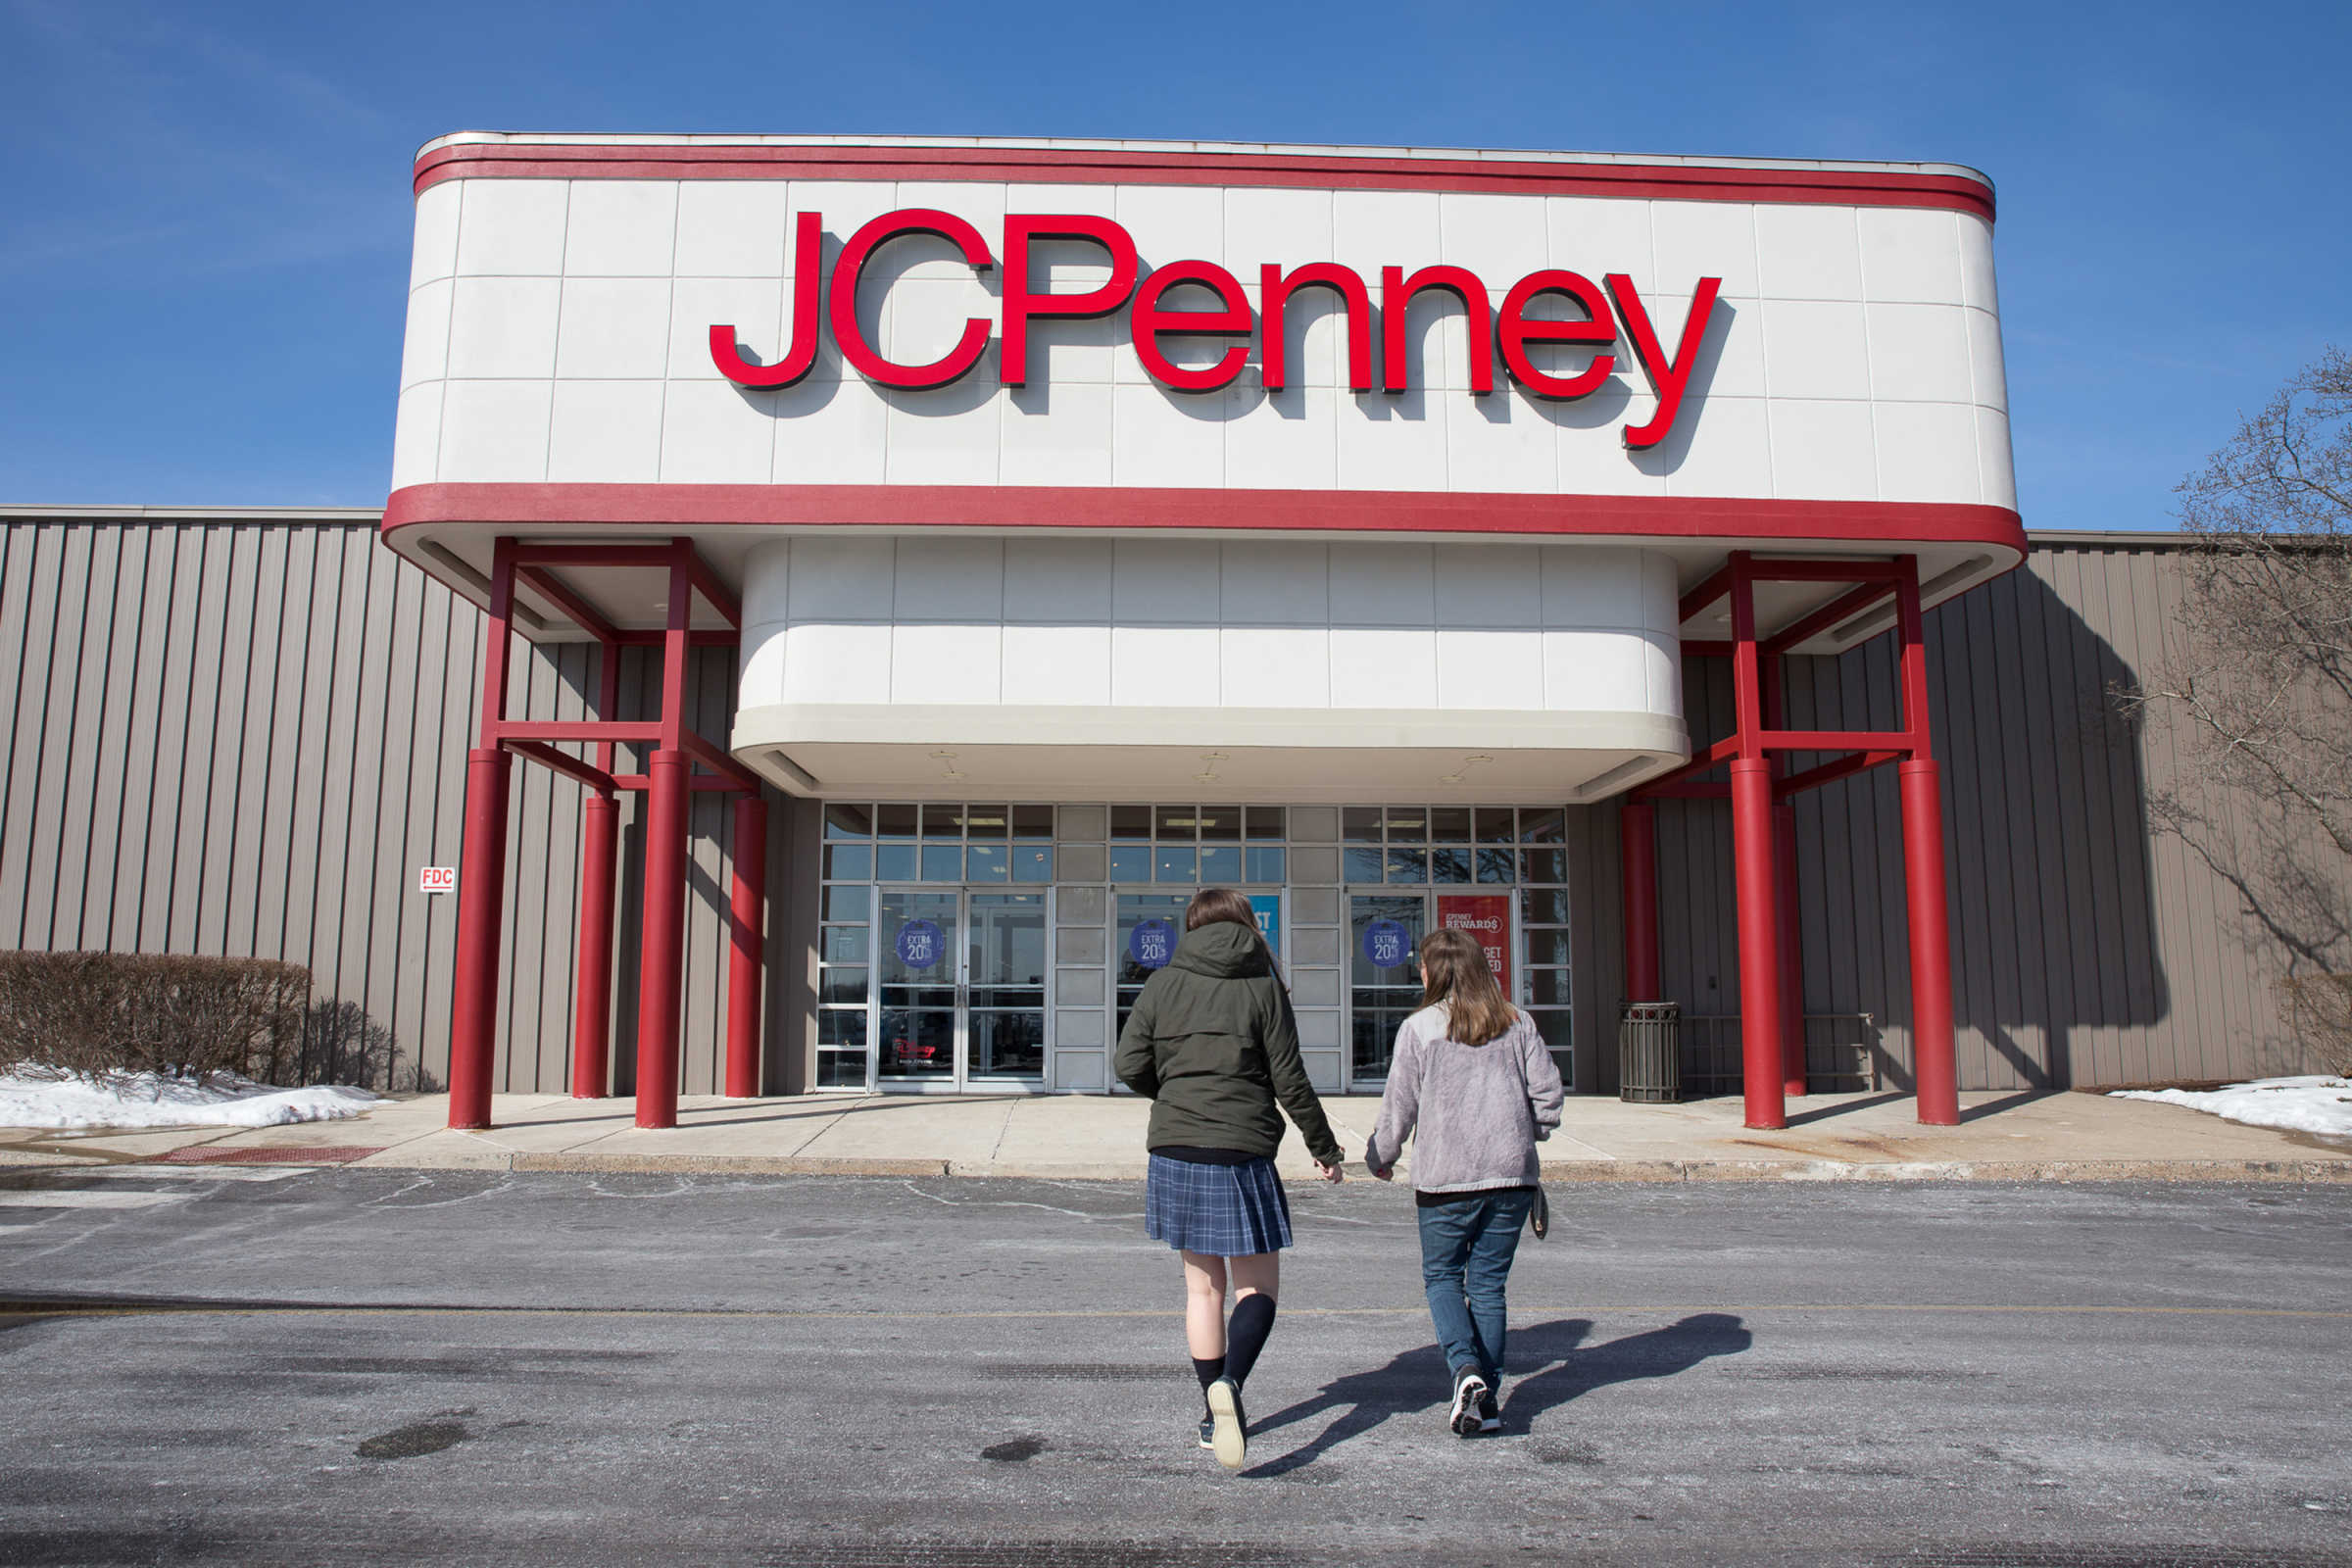 At JCPenney, we're always helping you find amazing deals on all your favorite items. Shop with us and enjoy an unbeatable selection of jewelry, clothing, shoes and more! Shop our mattresses and save on mattresses from brands, such as Sealy, Serta and Tempurpedic.